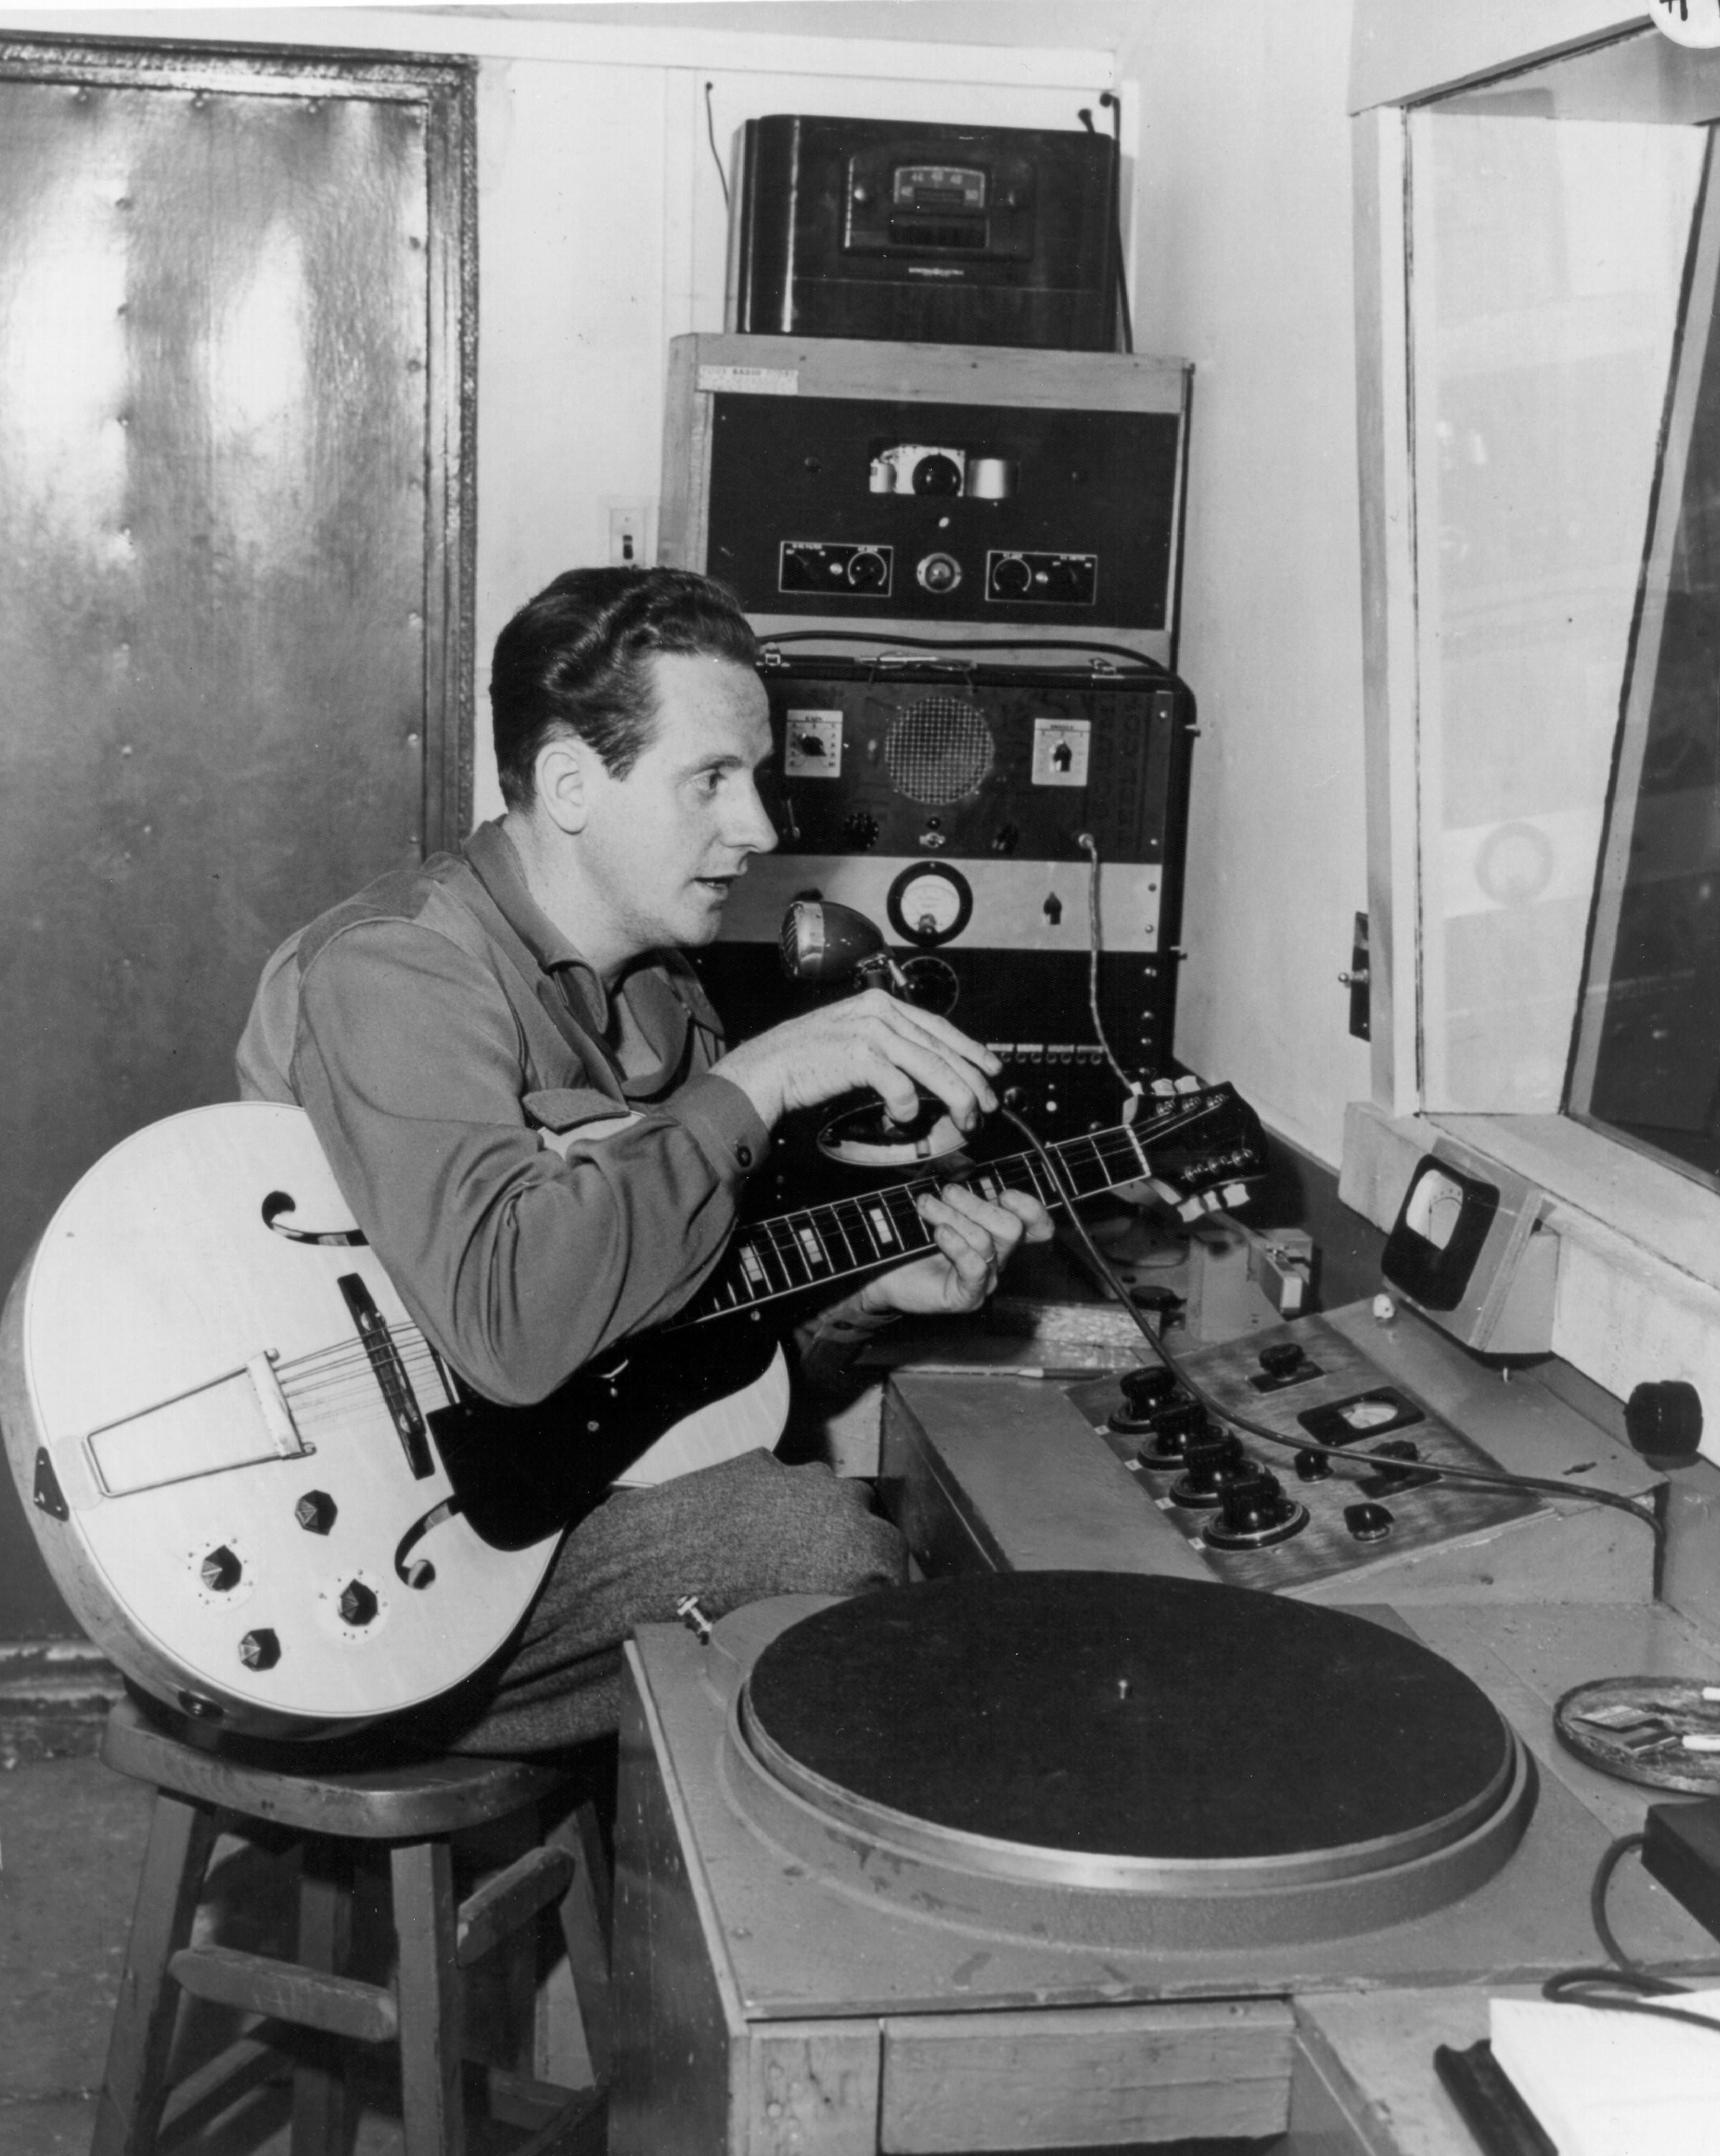 Born in Wisconsin in 1915, the  Wizard of Waukesha  played country music gigs at a drive-in restaurant as a teenager. He experimented with electric amplification to reach the outdoors audience by placing a pickup behind the strings of his acoustic guitar and wiring it to a radio speaker.